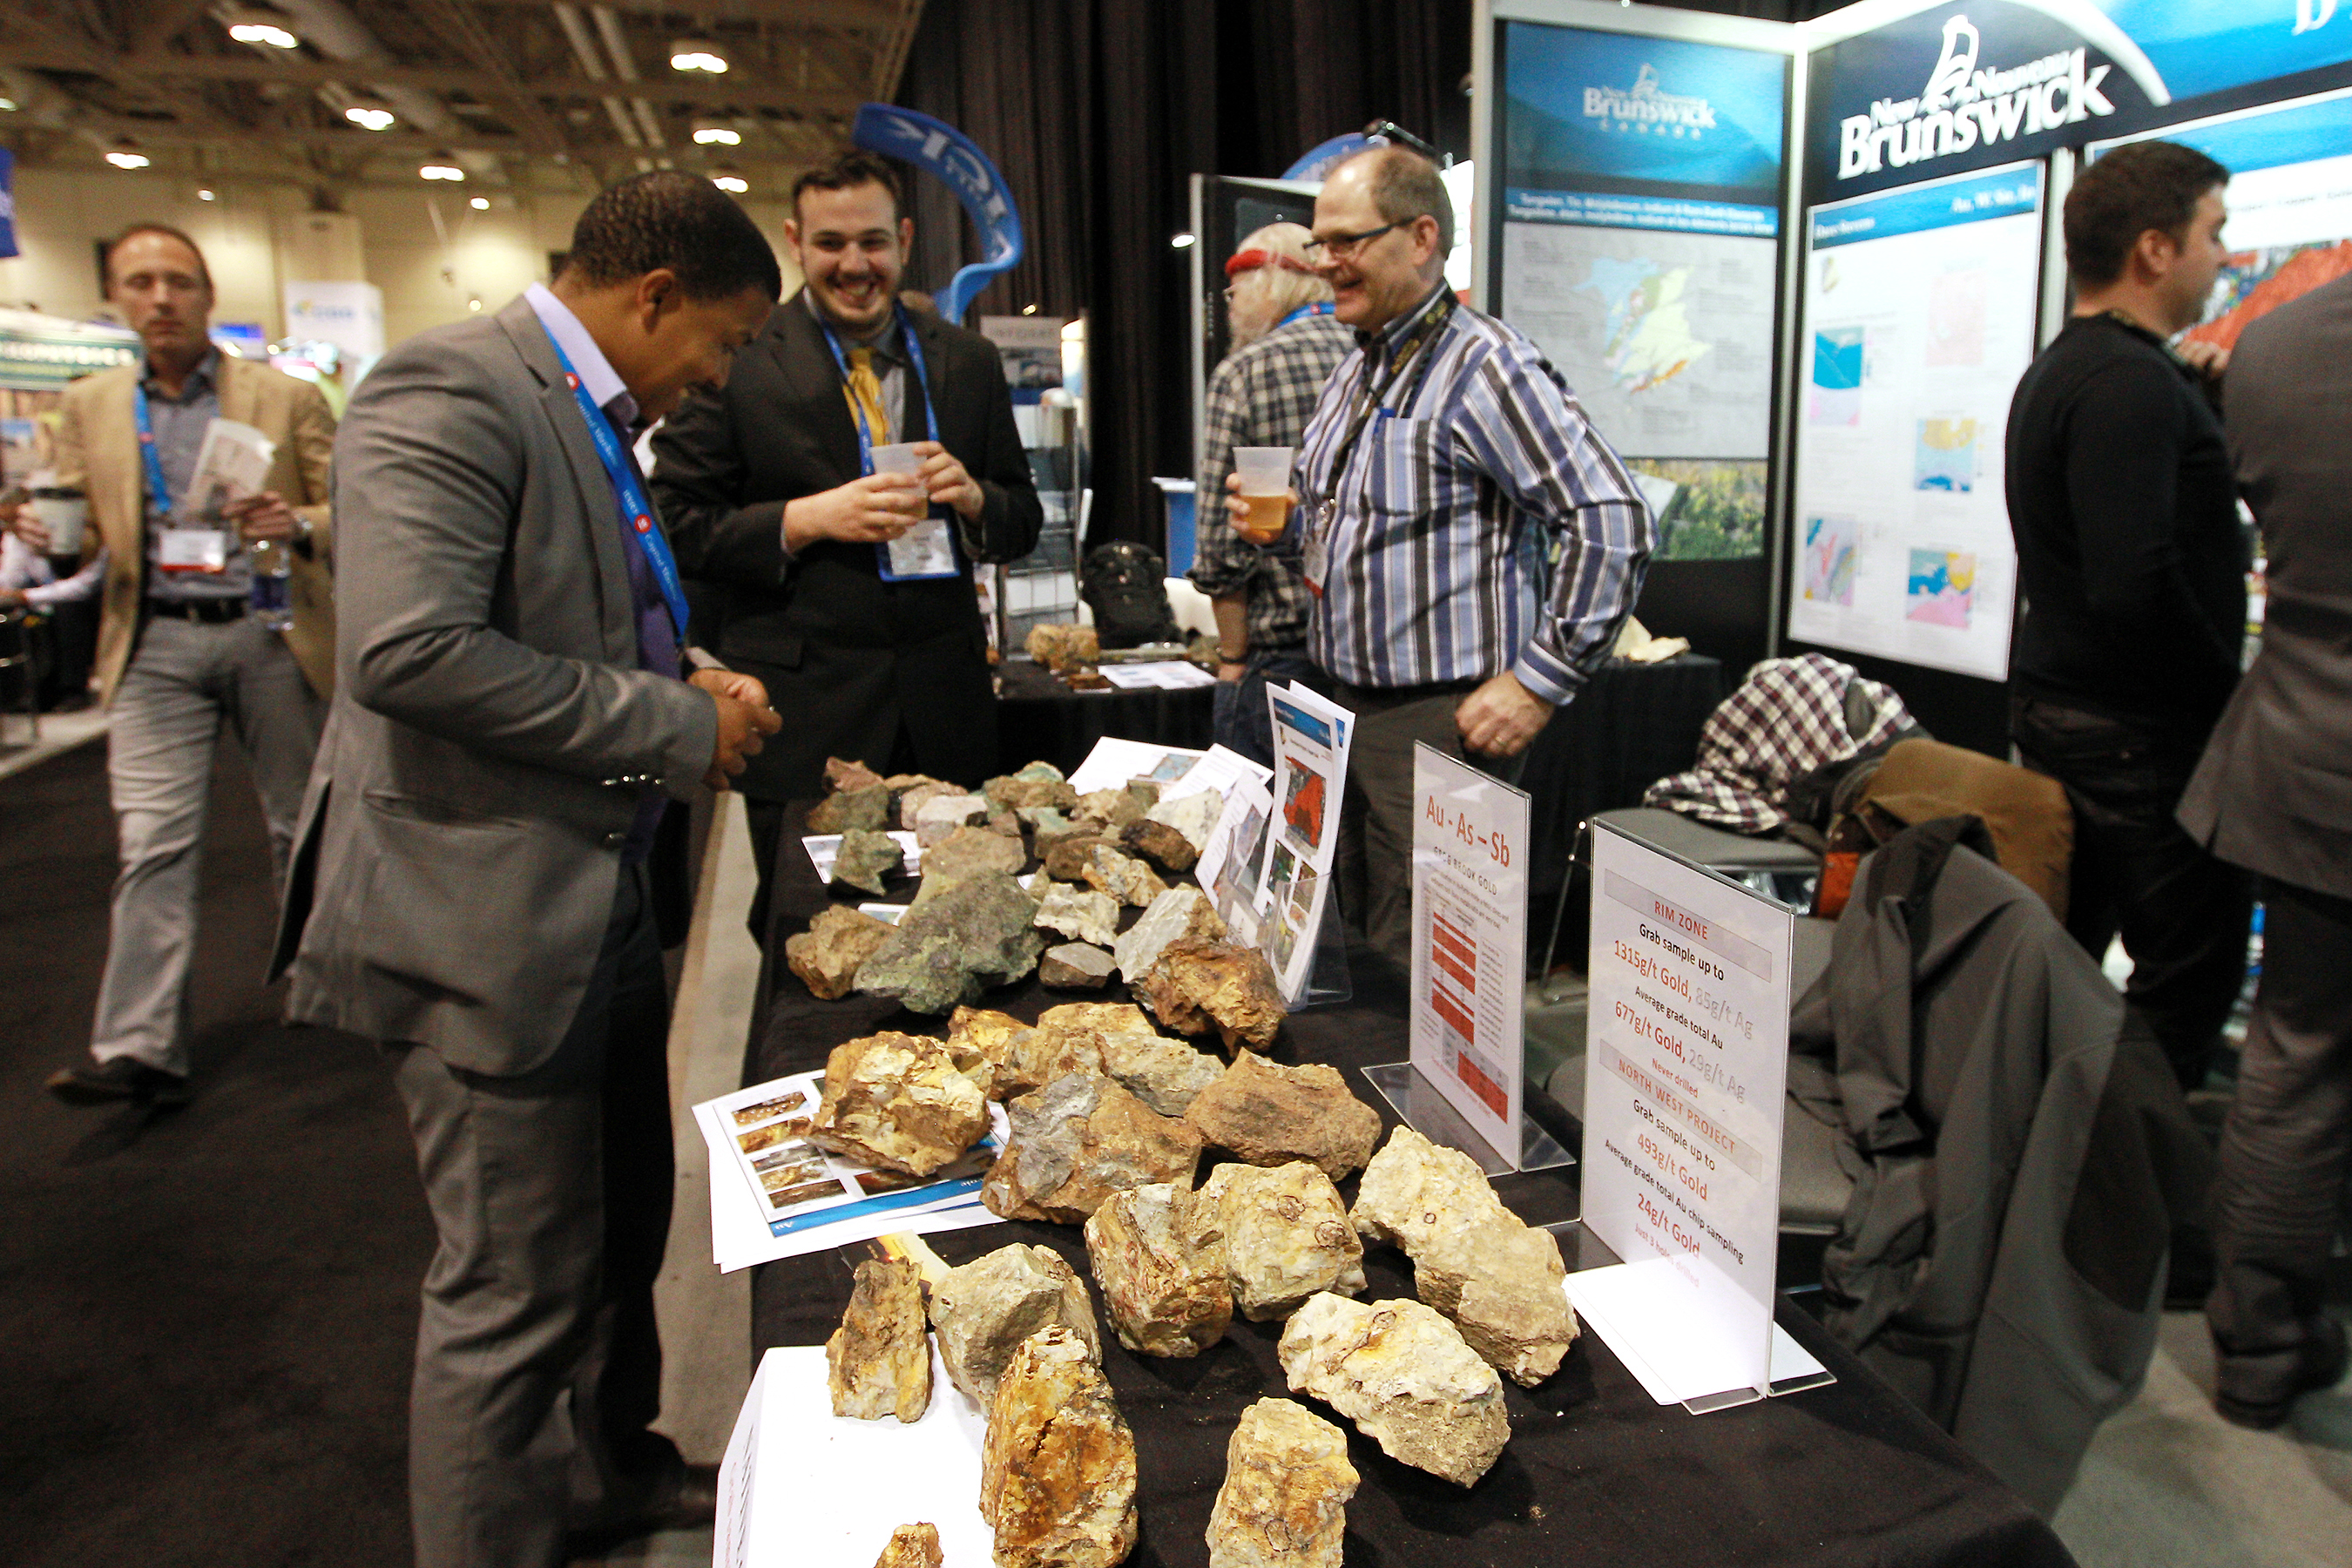 Atlantic Rock Room, Trade Show